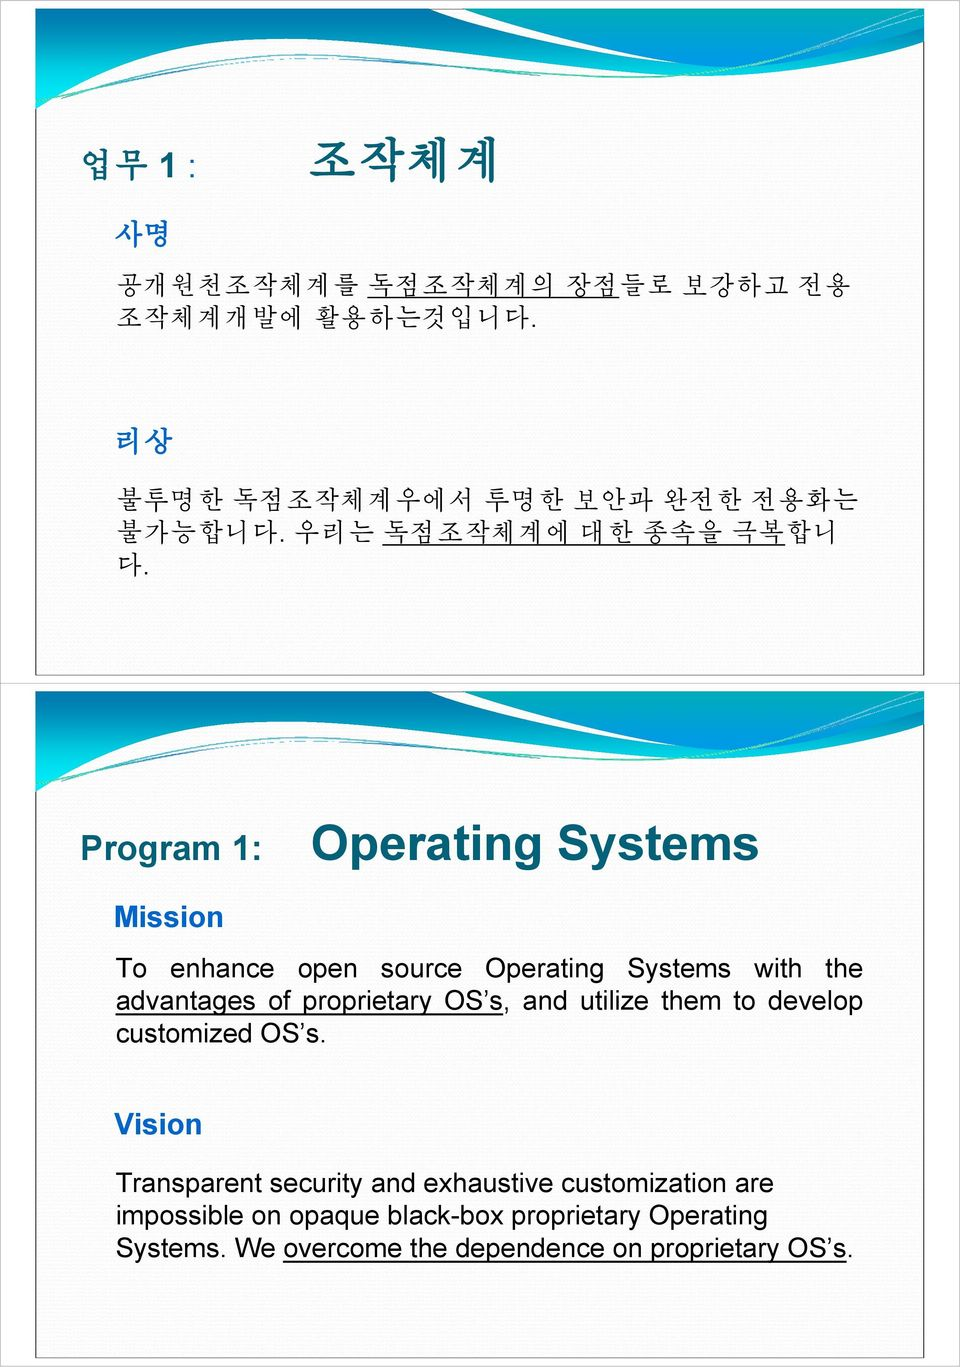 Program 1: Operating Systems Mission To enhance open source Operating Systems with the advantages of proprietary OS